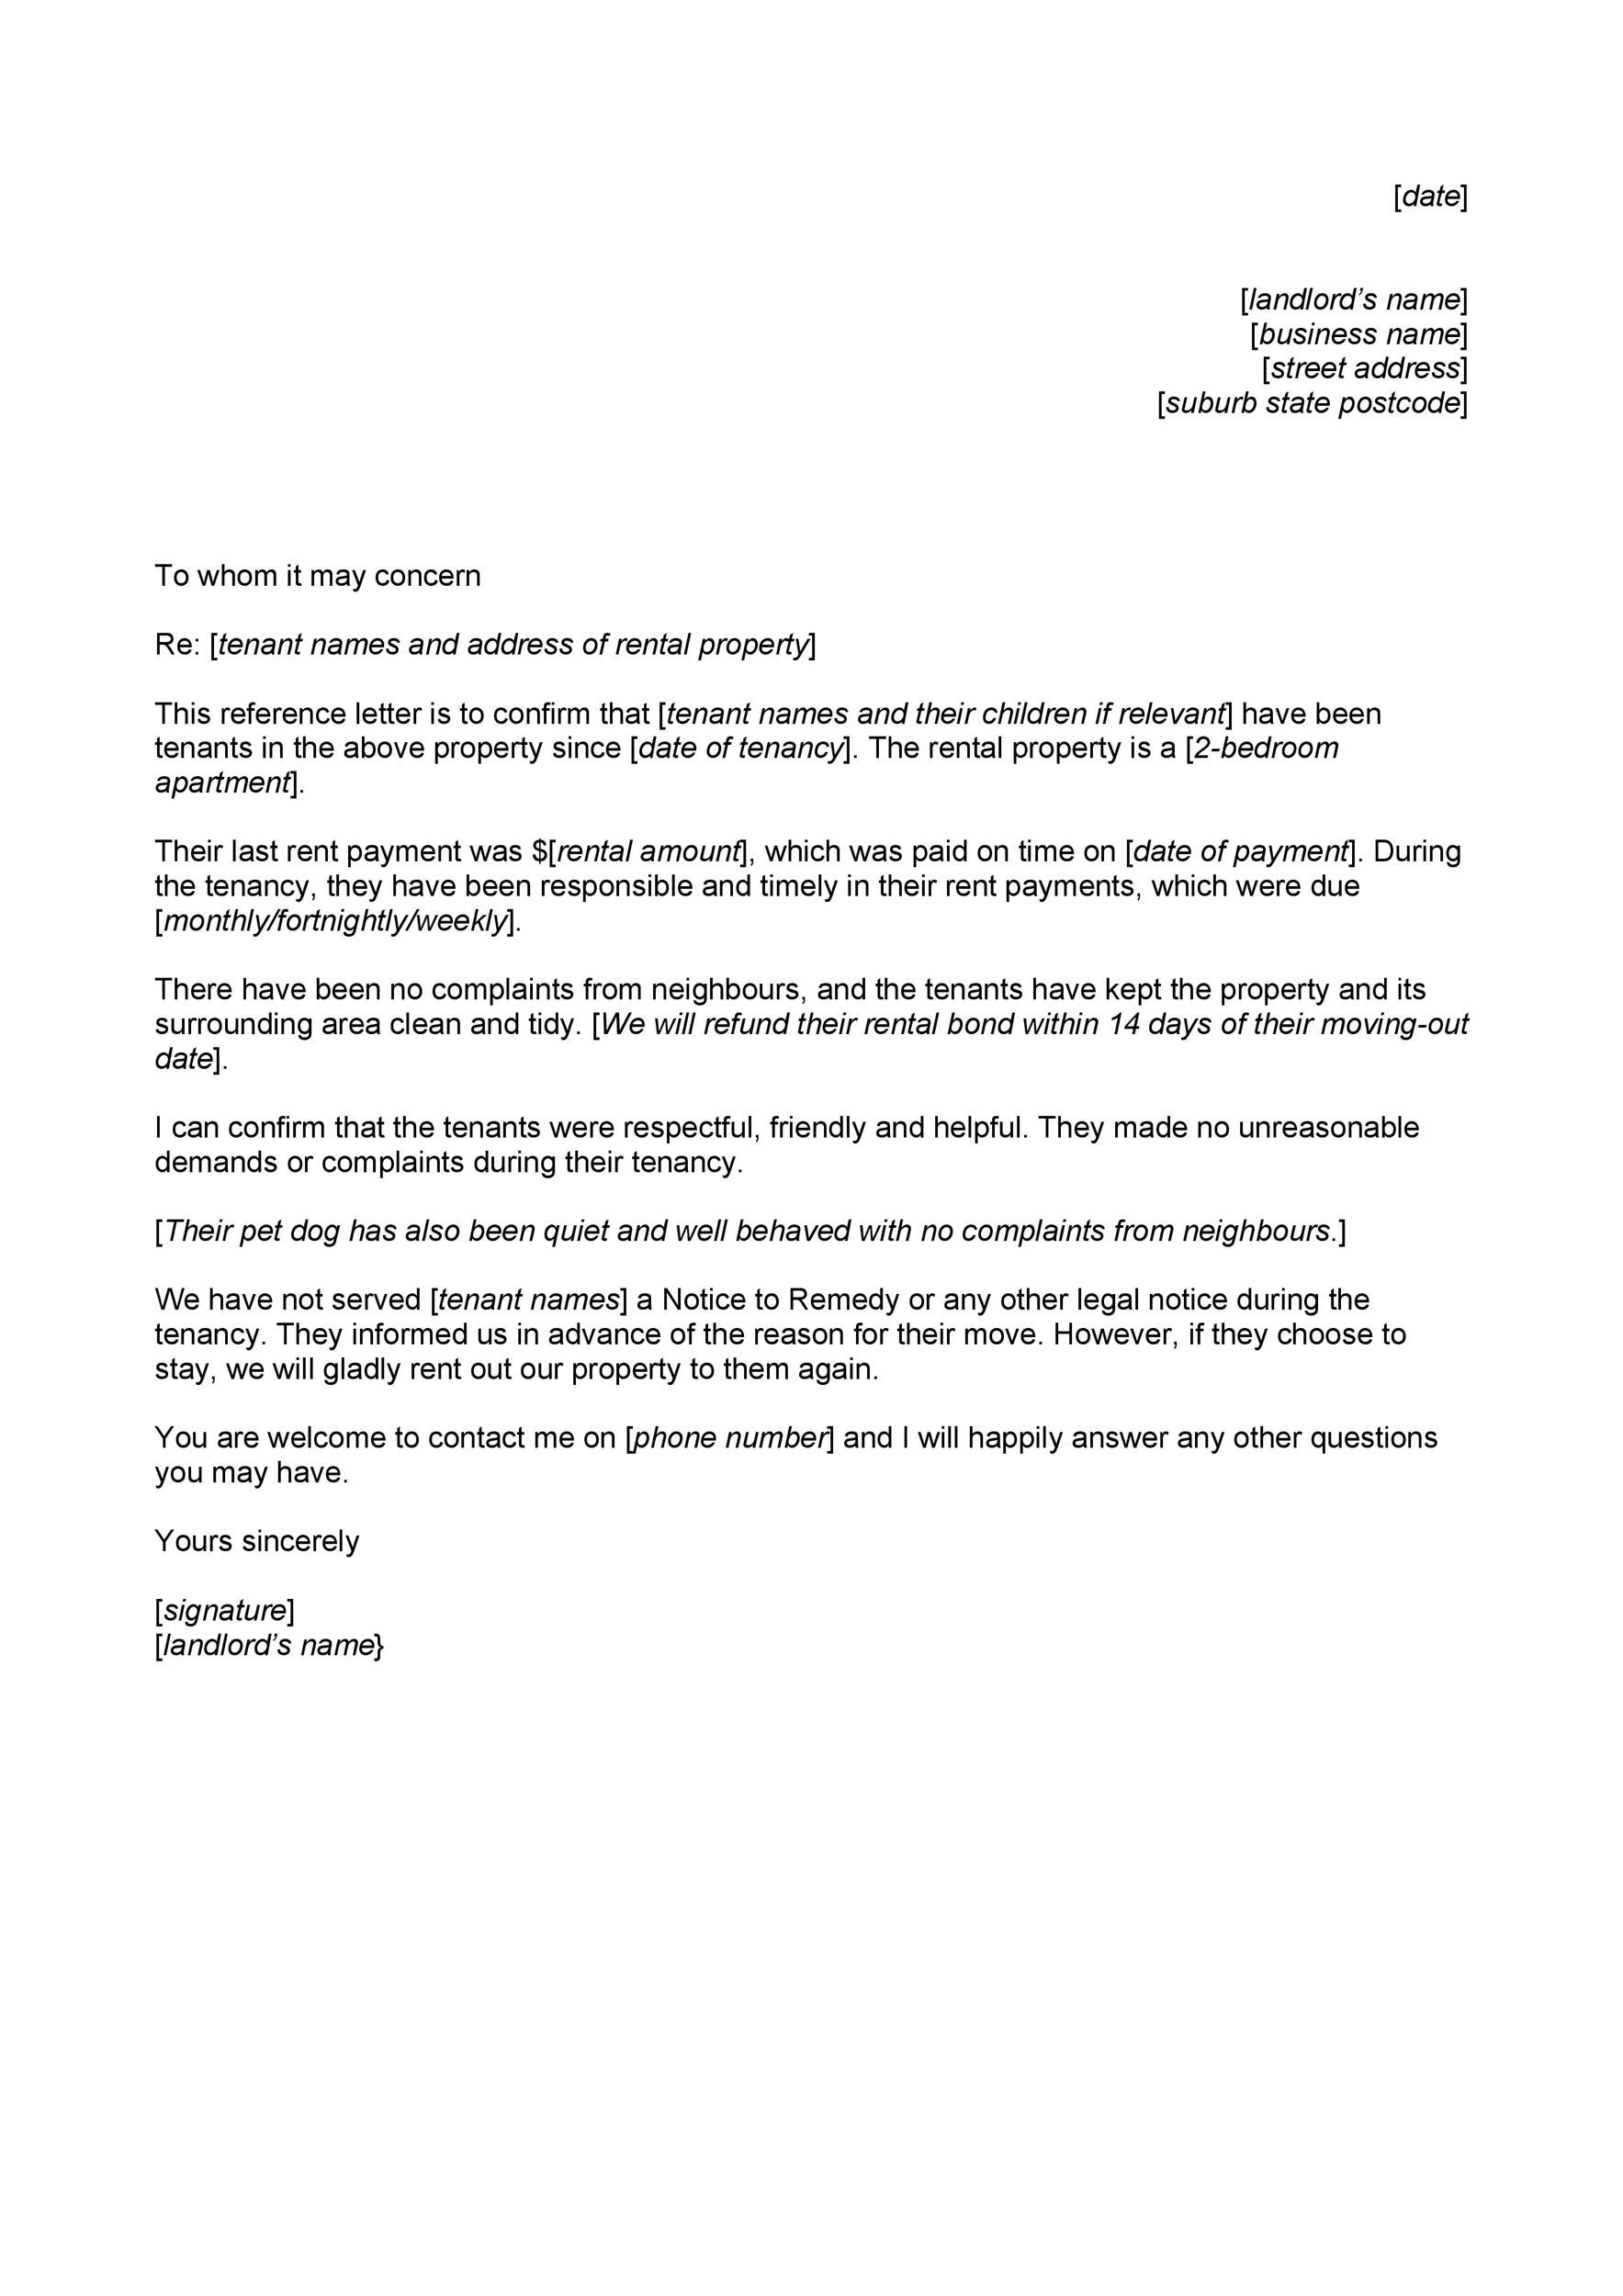 Free landlord reference letter 36